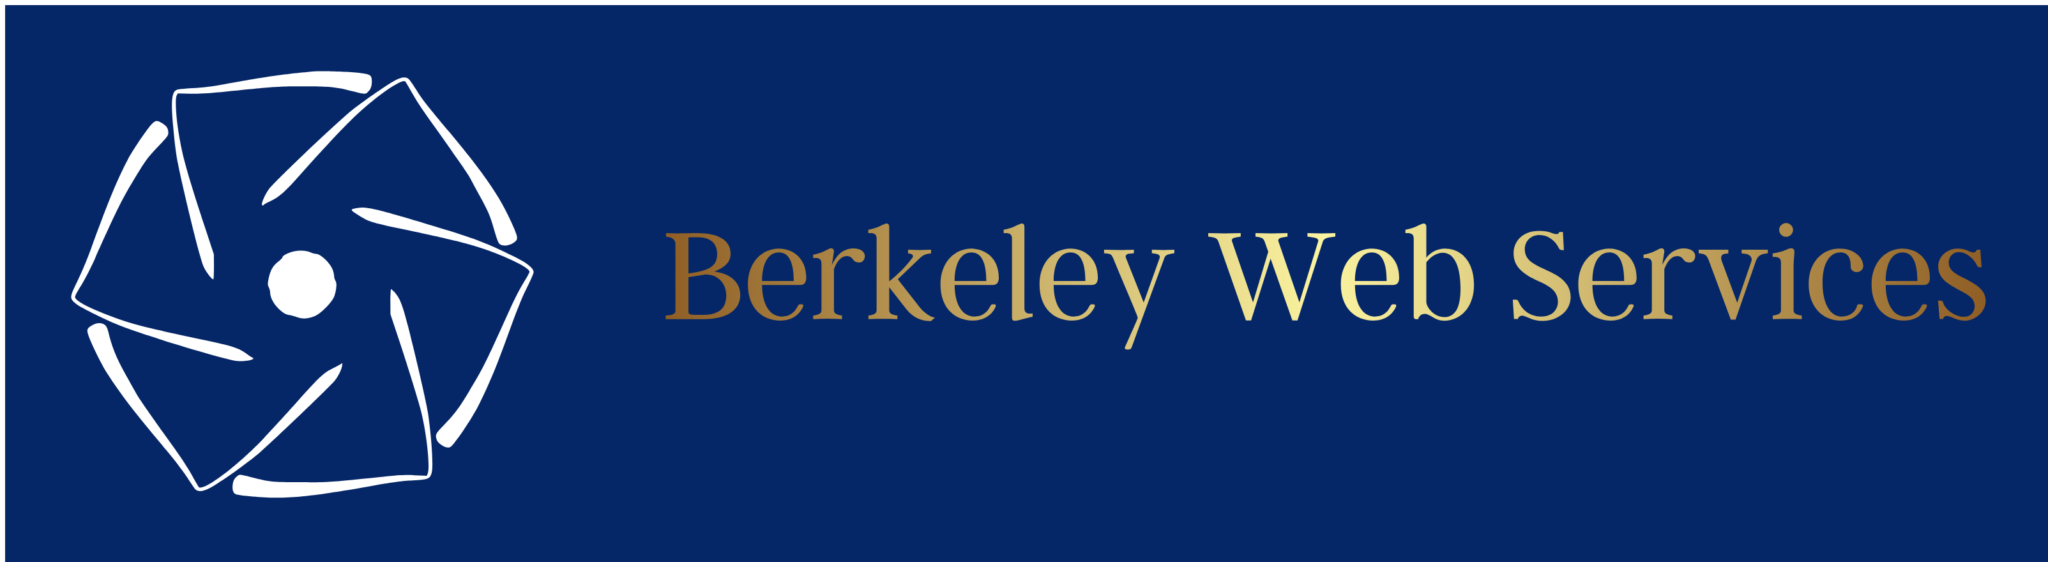 Berkeley Web Services logo